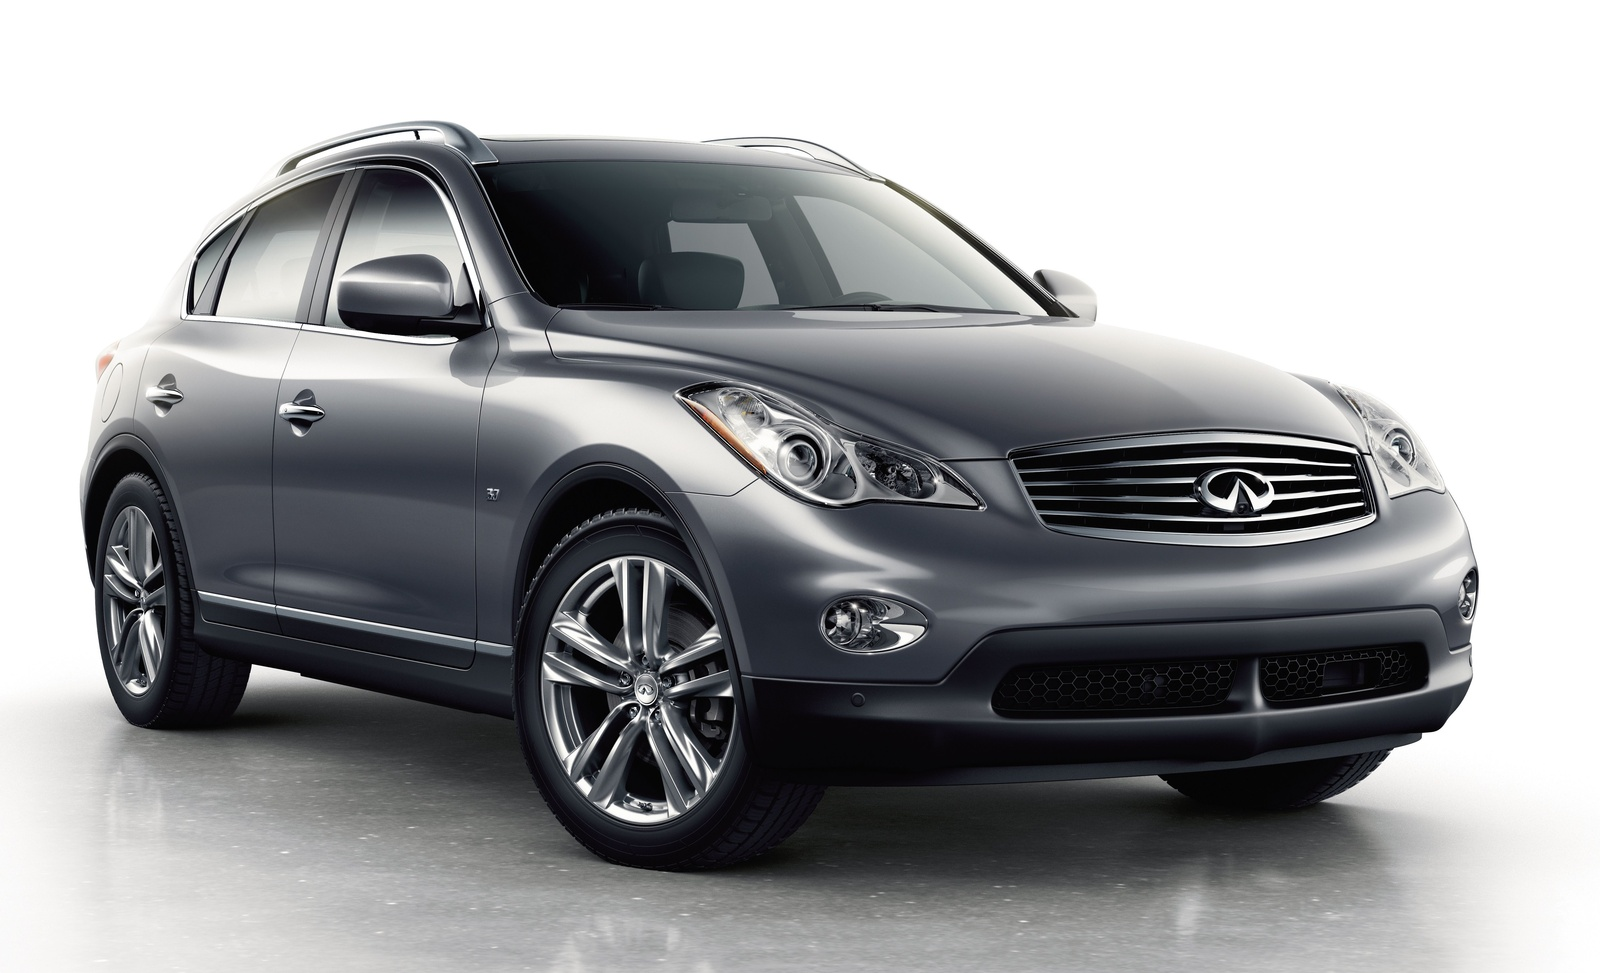 2015 infiniti qx50 review cargurus. Black Bedroom Furniture Sets. Home Design Ideas